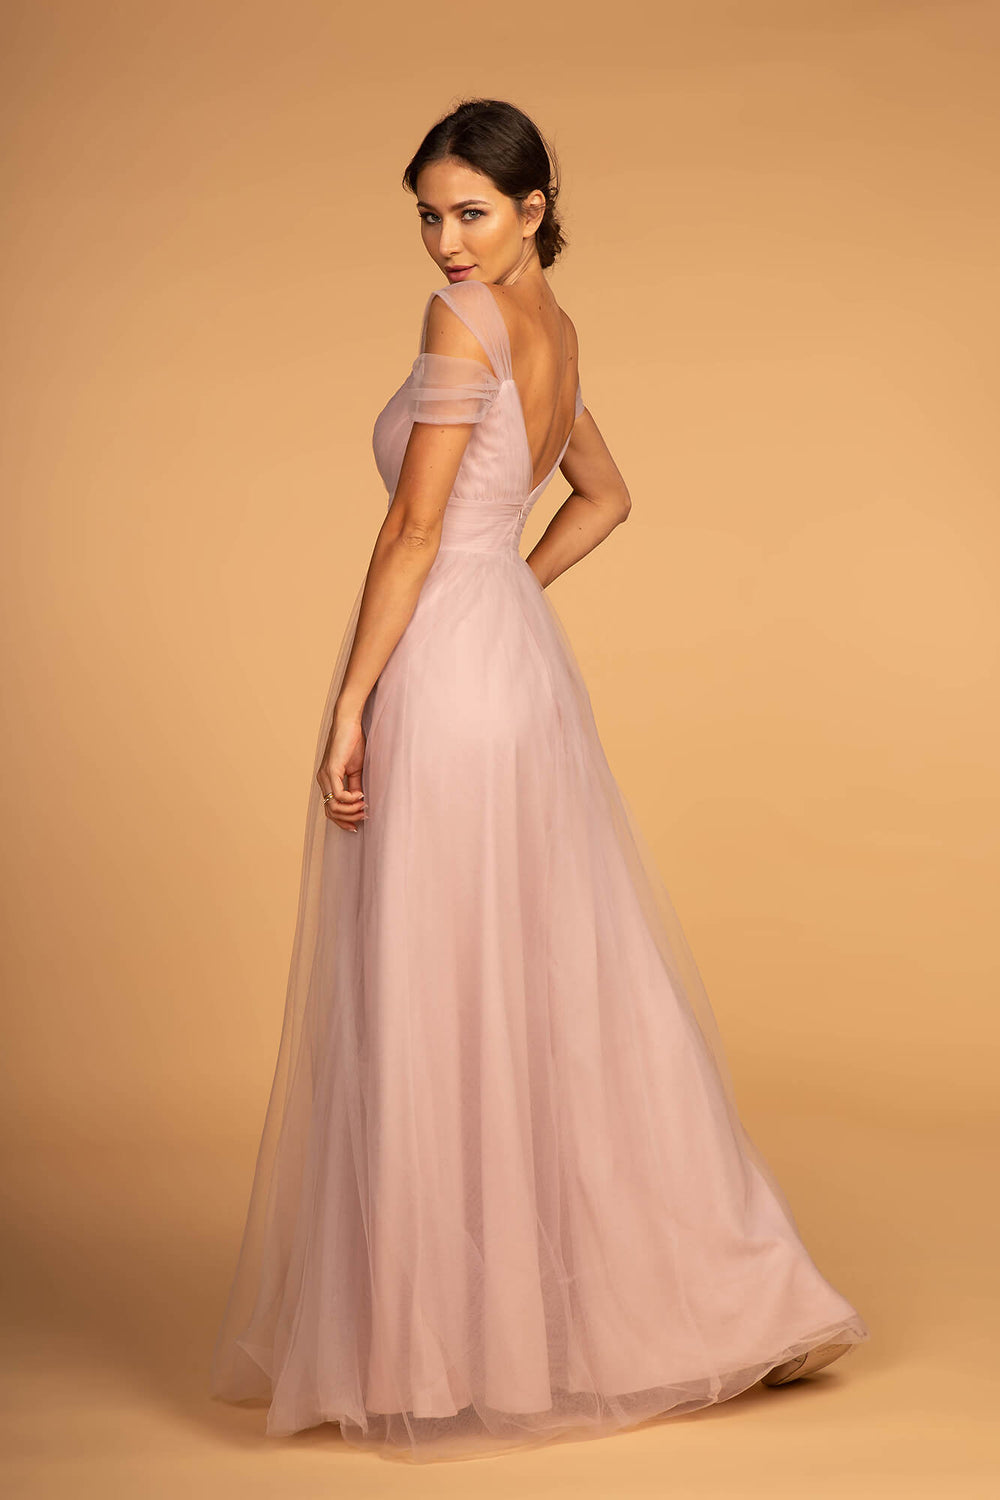 Sweethearted Formal Long Dress Bridesmaid - The Dress Outlet